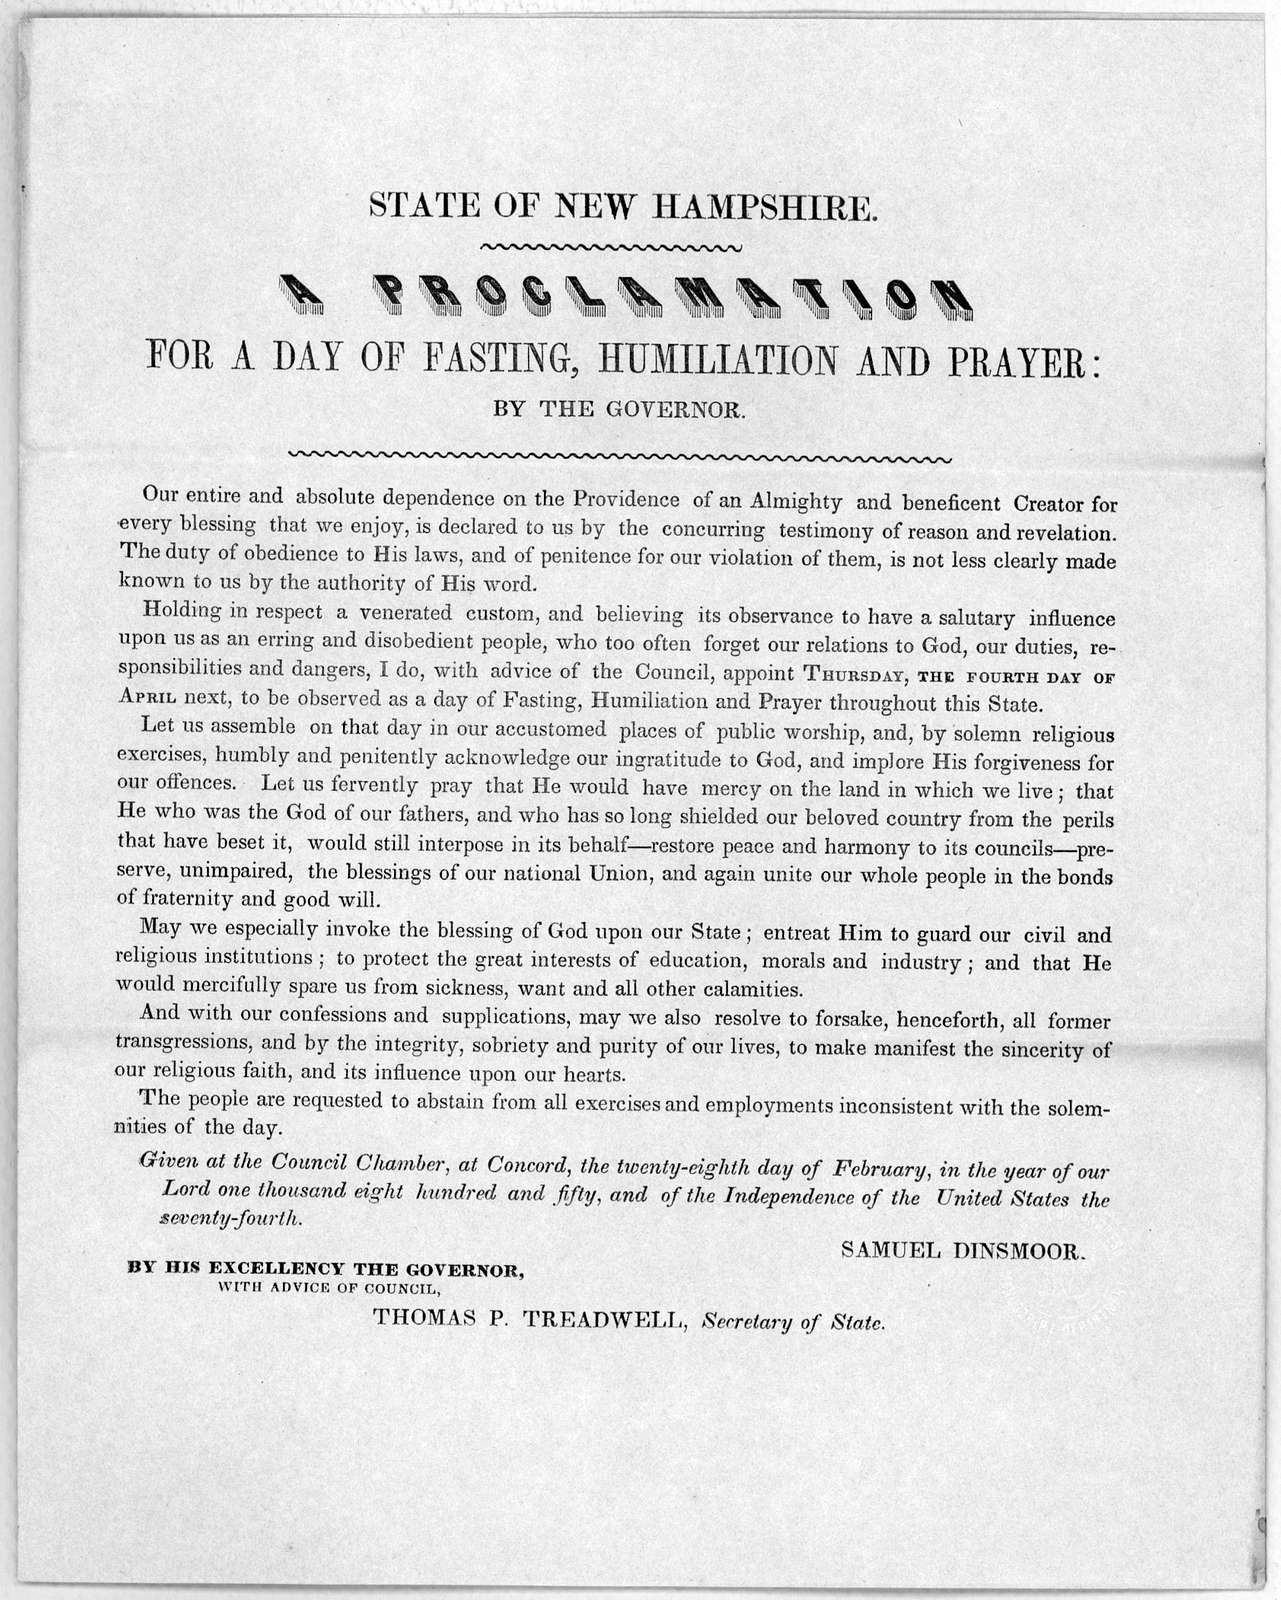 State of New Hampshire. A proclamation for a day of fasting, humiliation and prayer: by the governor ... appoint Thursday, the fourth day of April next, to be observed as a day of fasting, humiliation and prayer throughout this State ... Given a